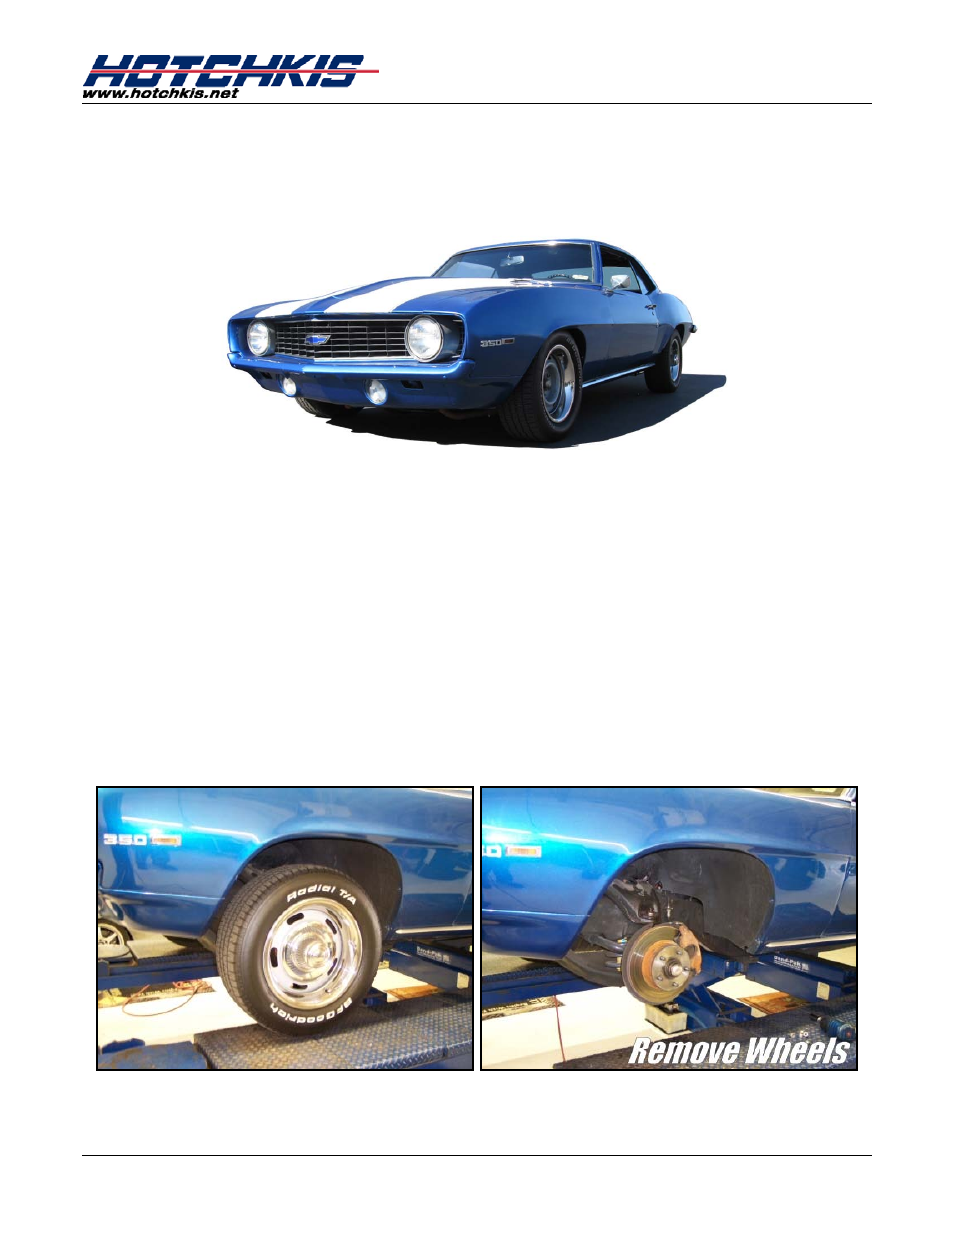 Kad1013209 front anti-roll bar installation instructions.